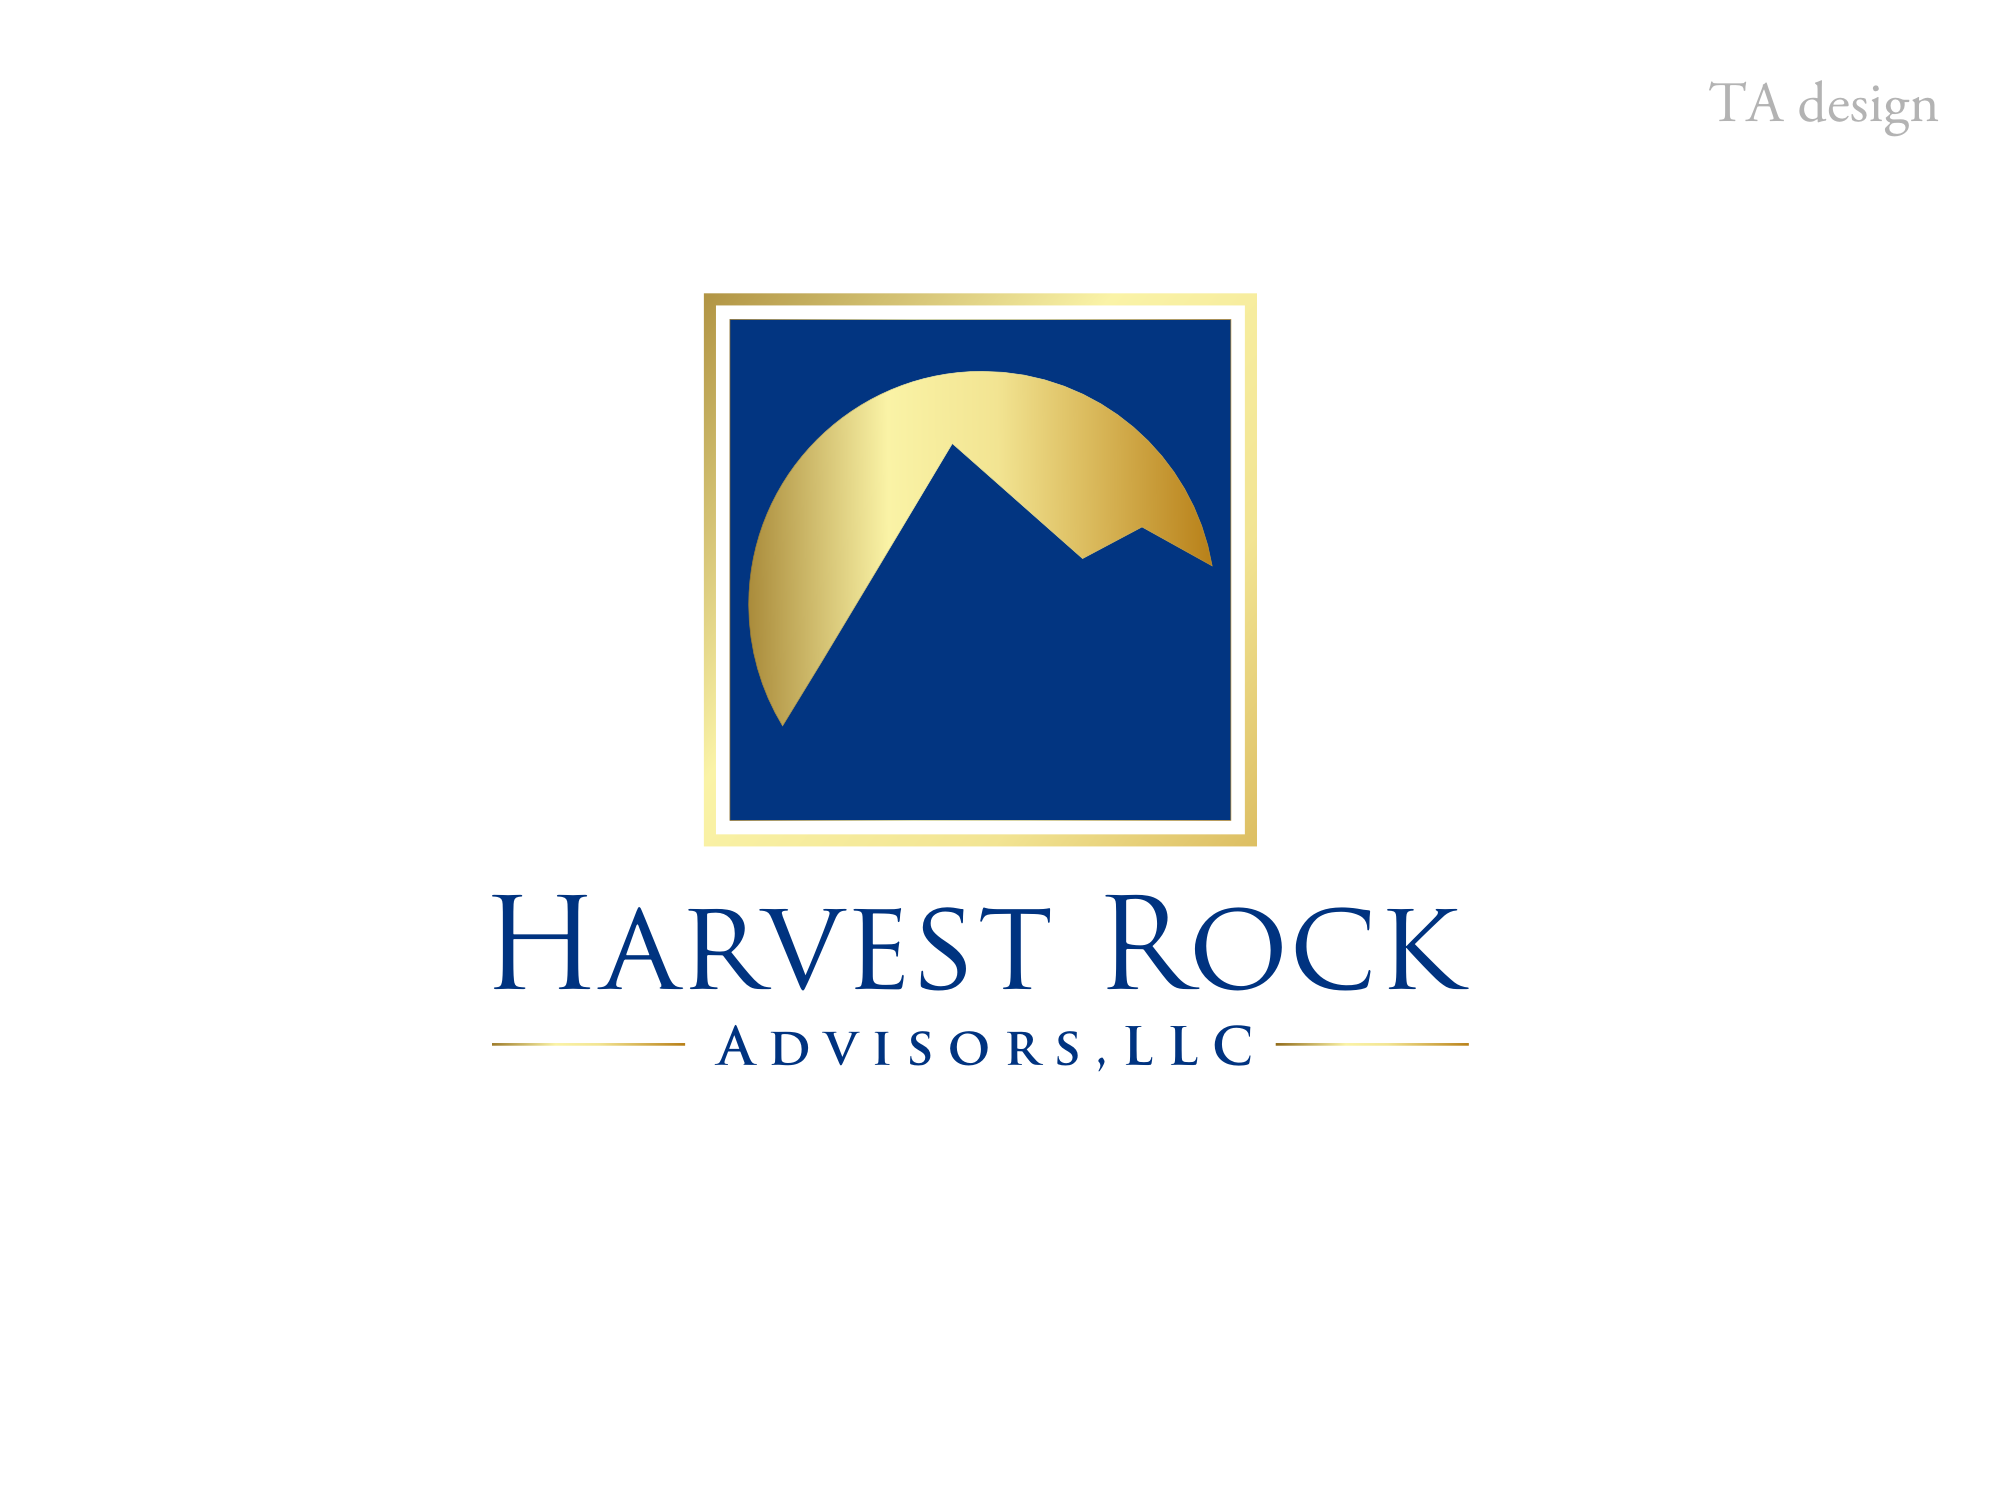 Harvest Rock Advisors needs a new logo